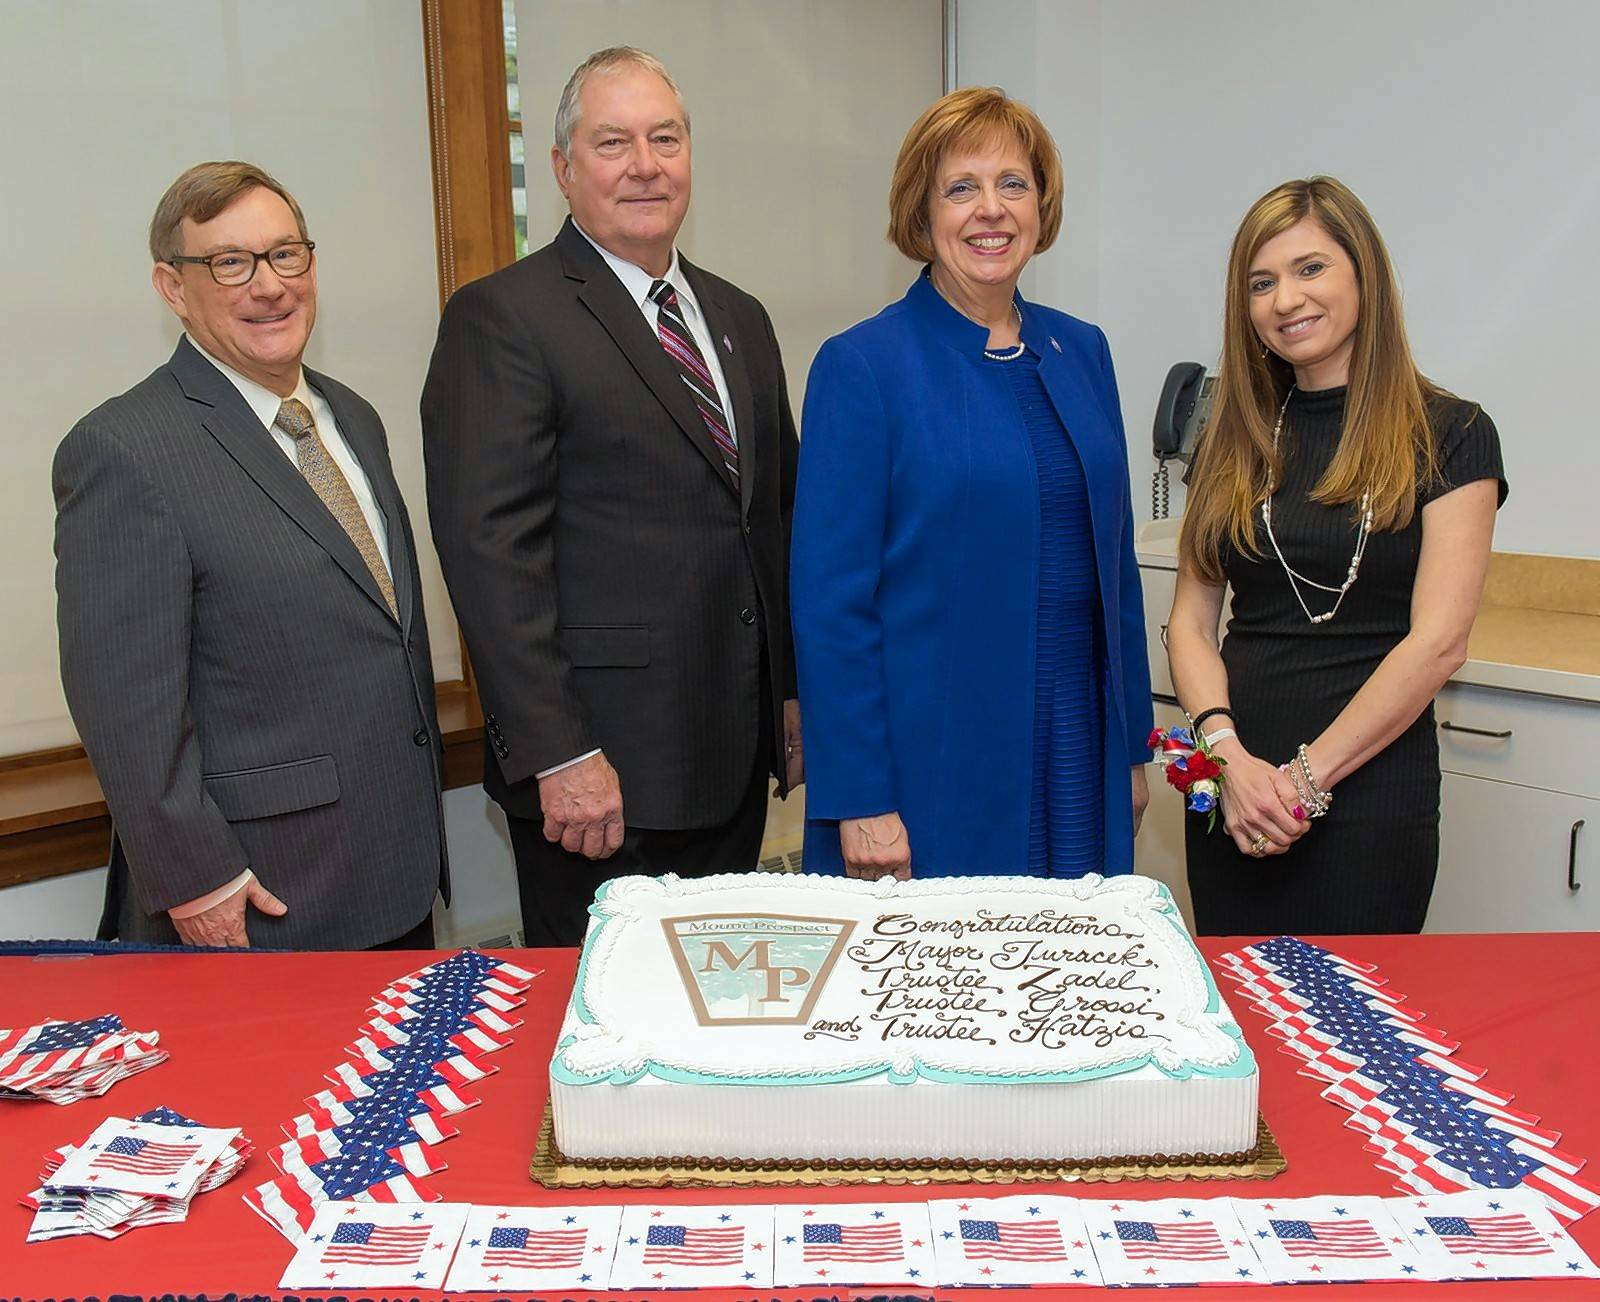 From left, Bill Grossi, Michael Zadel, Arlene Juracek and Eleni Hatzis were sworn in last week after the Mount Prospect village election in April.